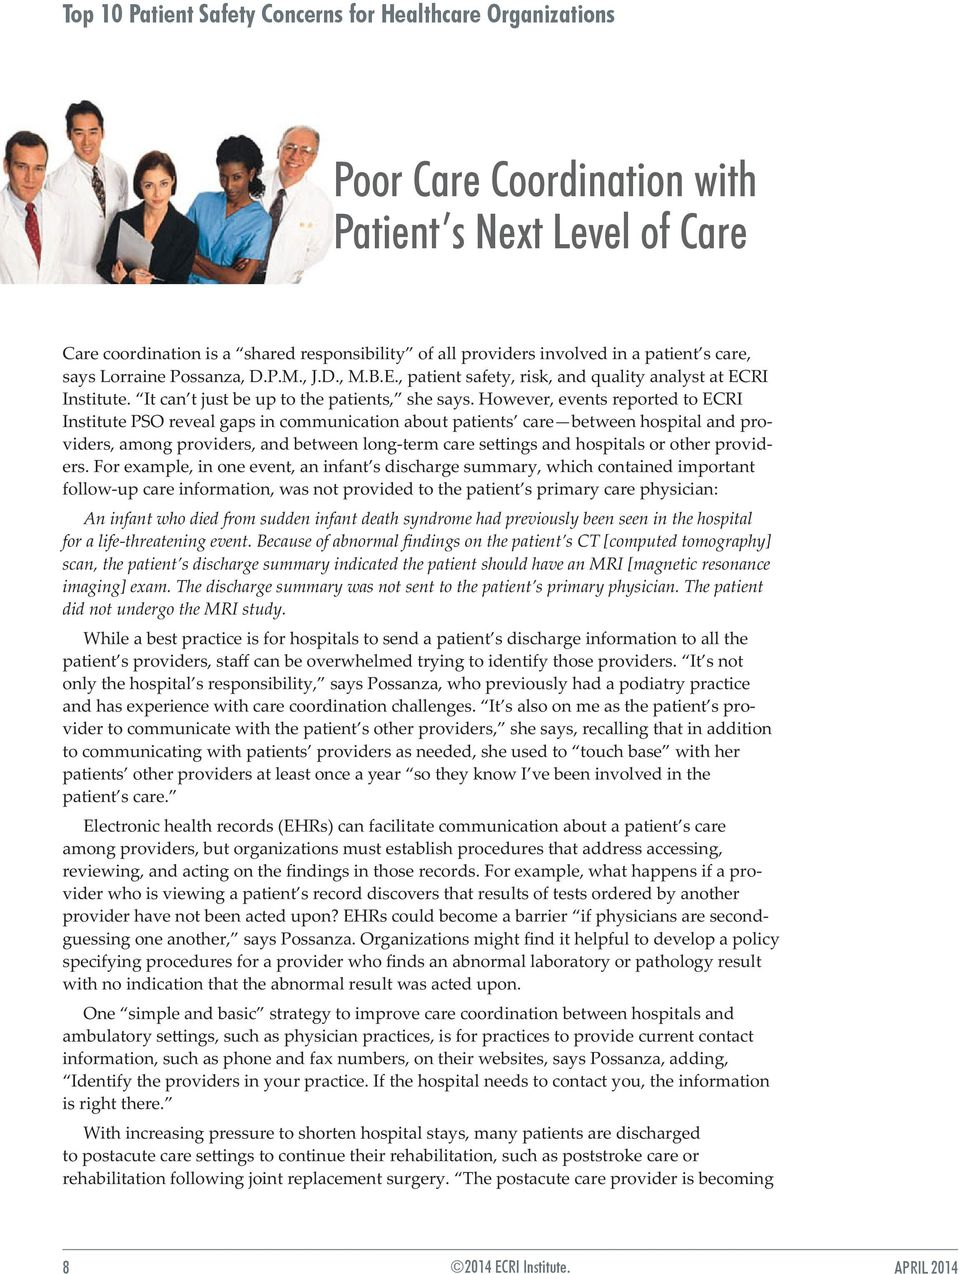 However, events reported to ECRI Institute PSO reveal gaps in communication about patients care between hospital and providers, among providers, and between long-term care settings and hospitals or